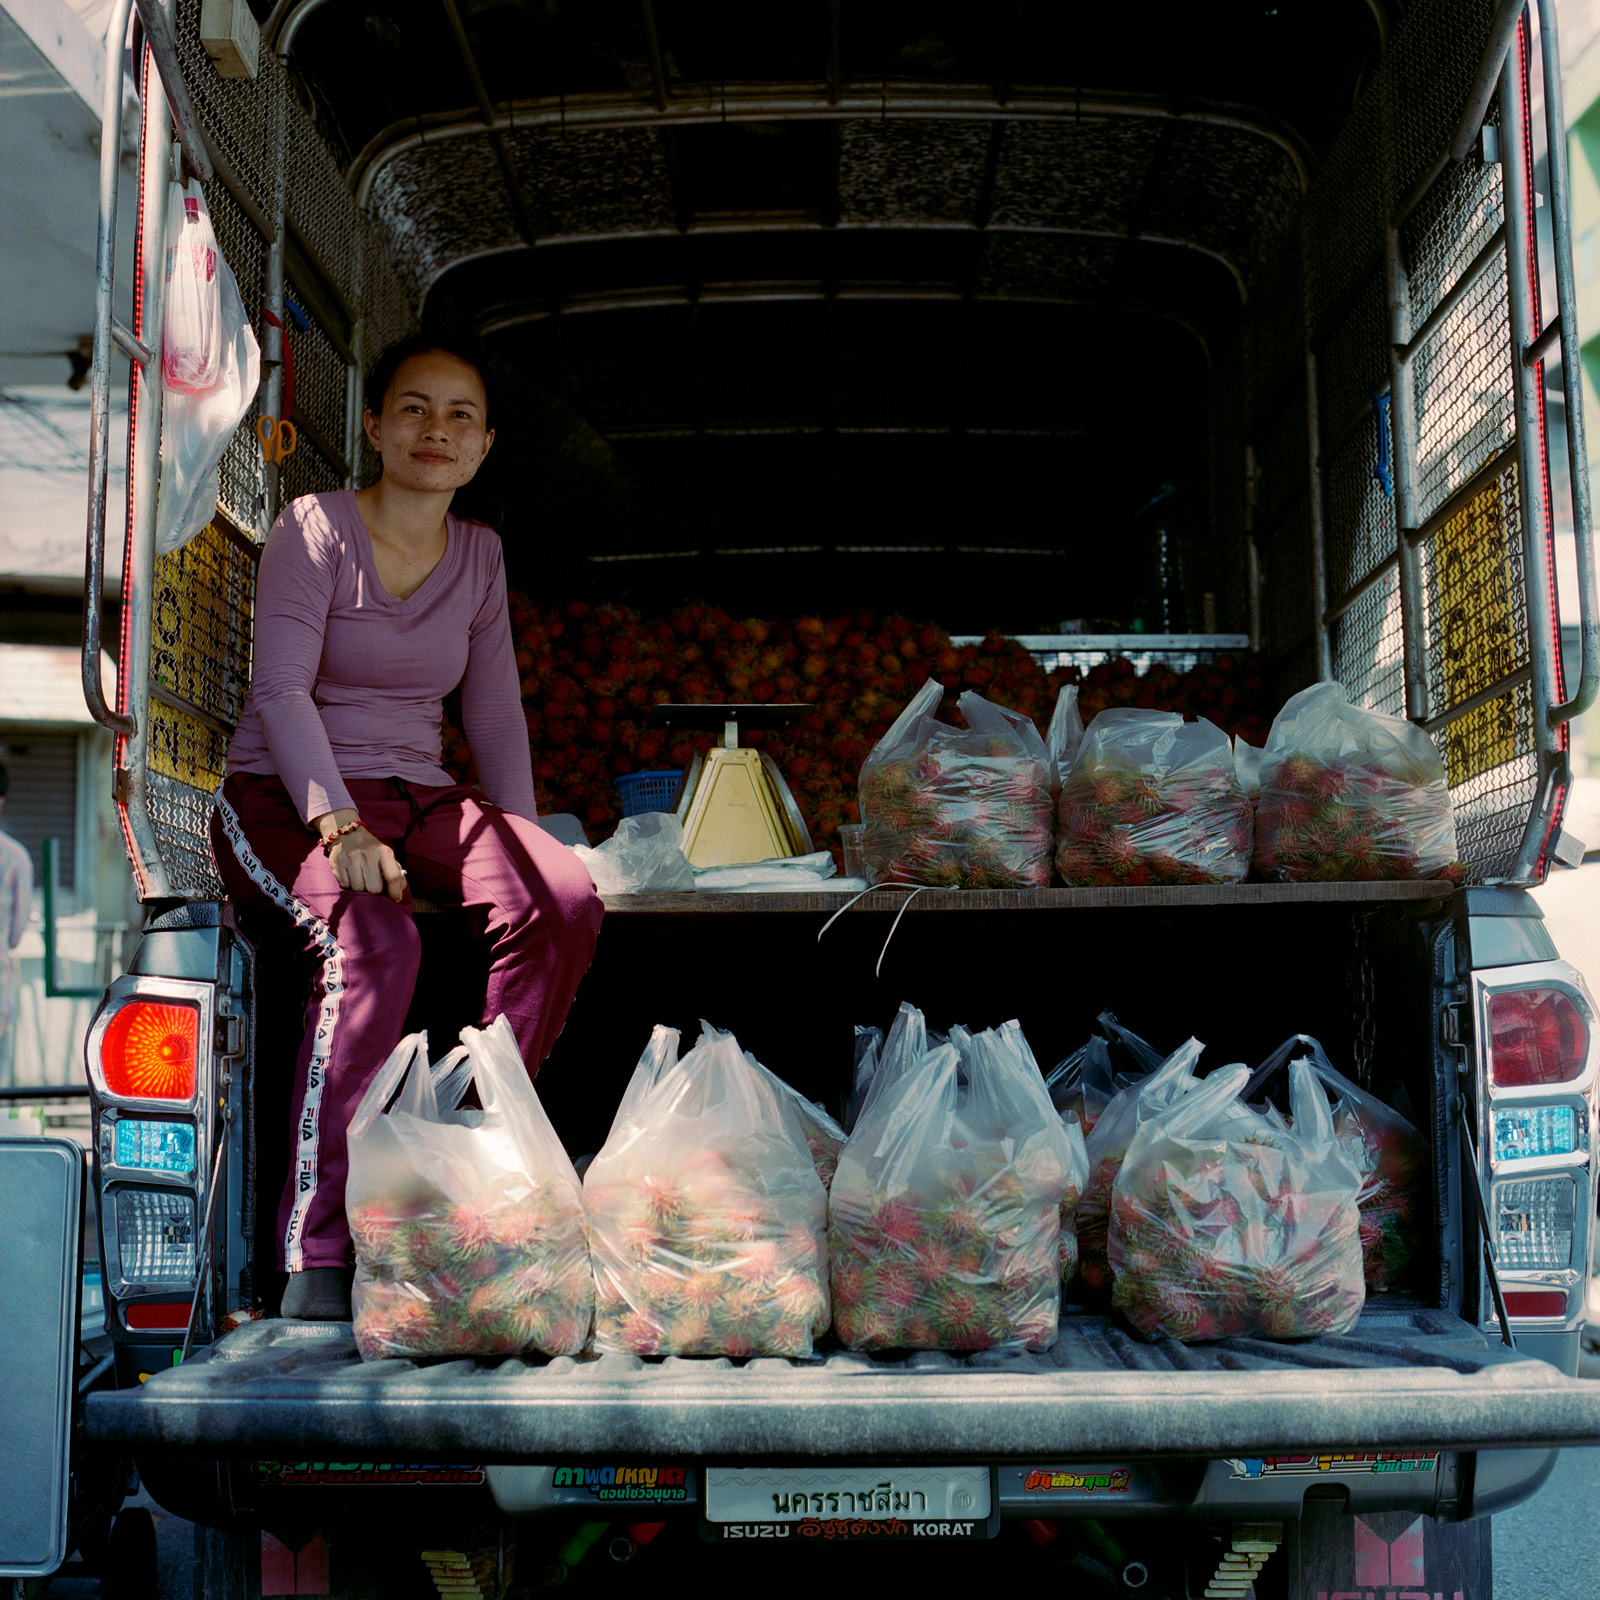 street market seller, girl, on back of truck, selling bags of rambutan fruit, off Mittraphan Road, Bangkok, Eastern Travels, Photography by Ioannis Koussertari